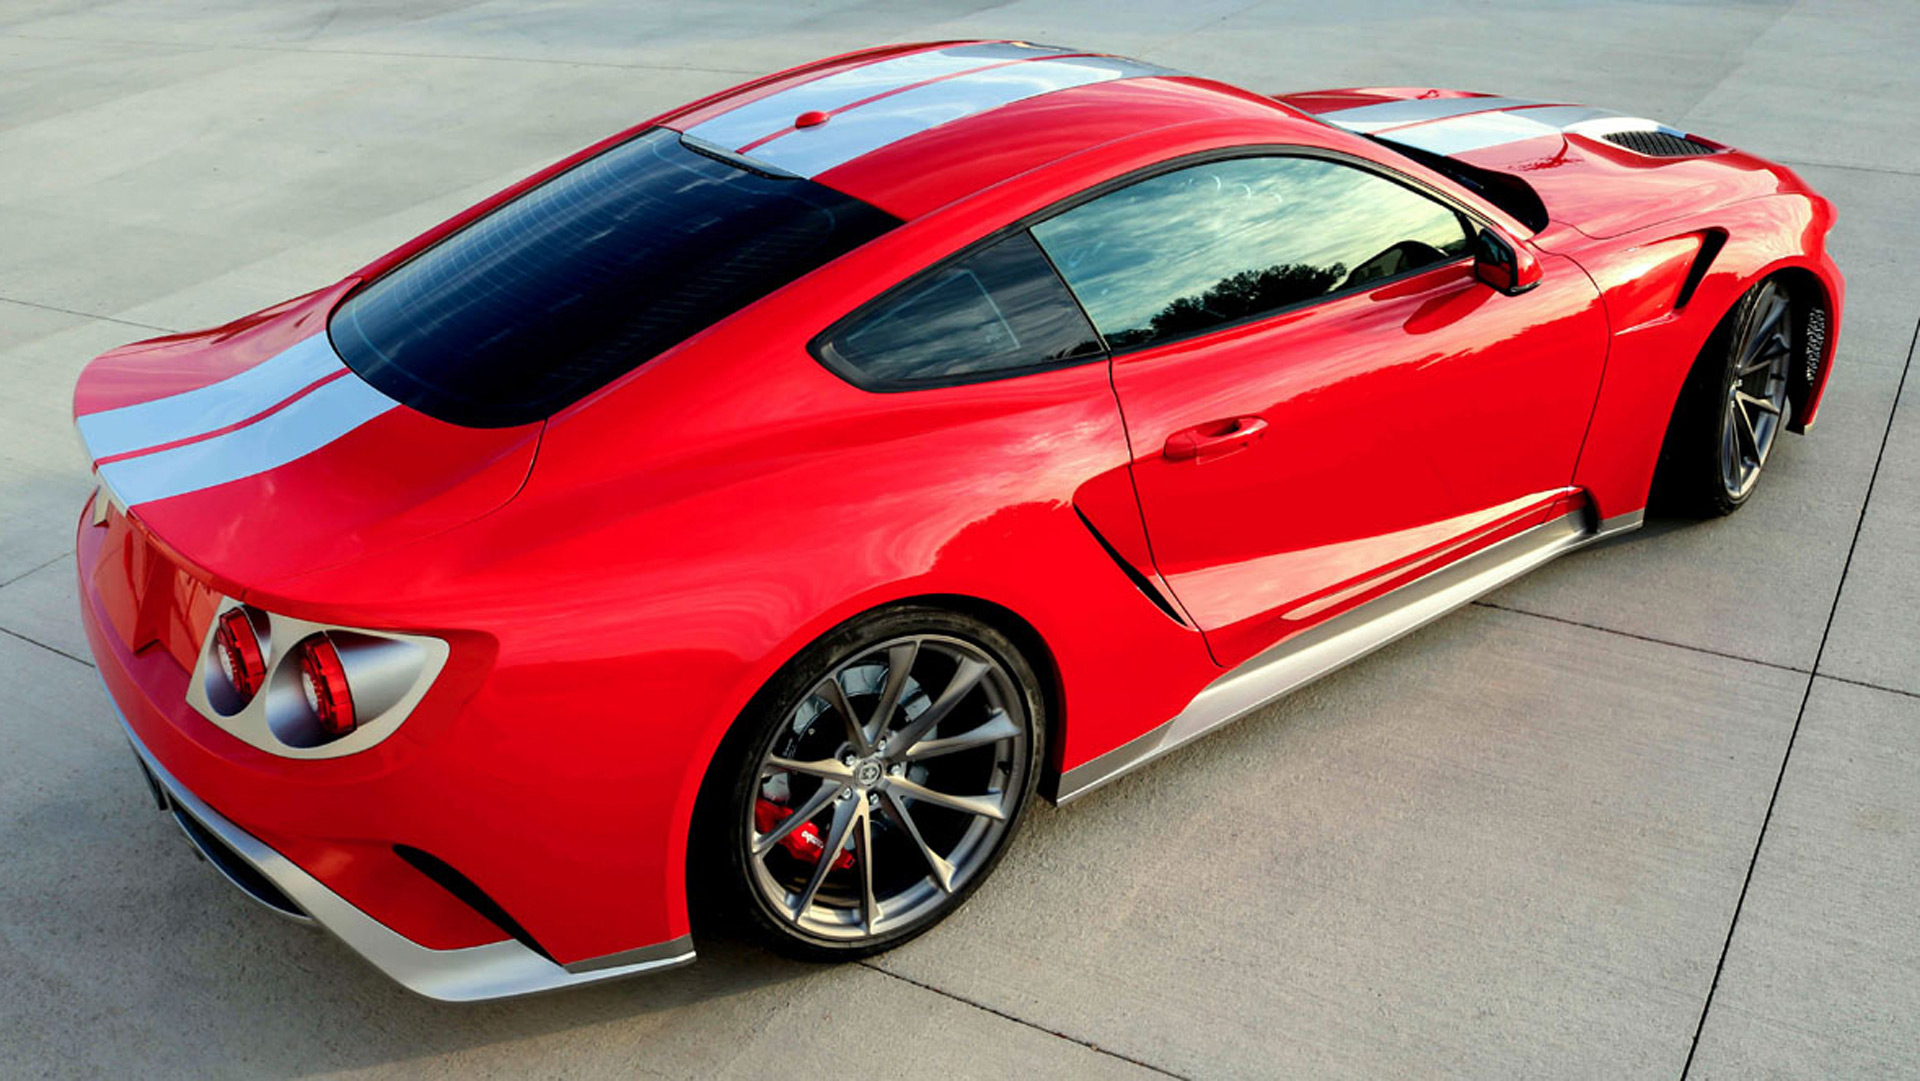 Ford GT-inspired Mustang available starting at $125,000